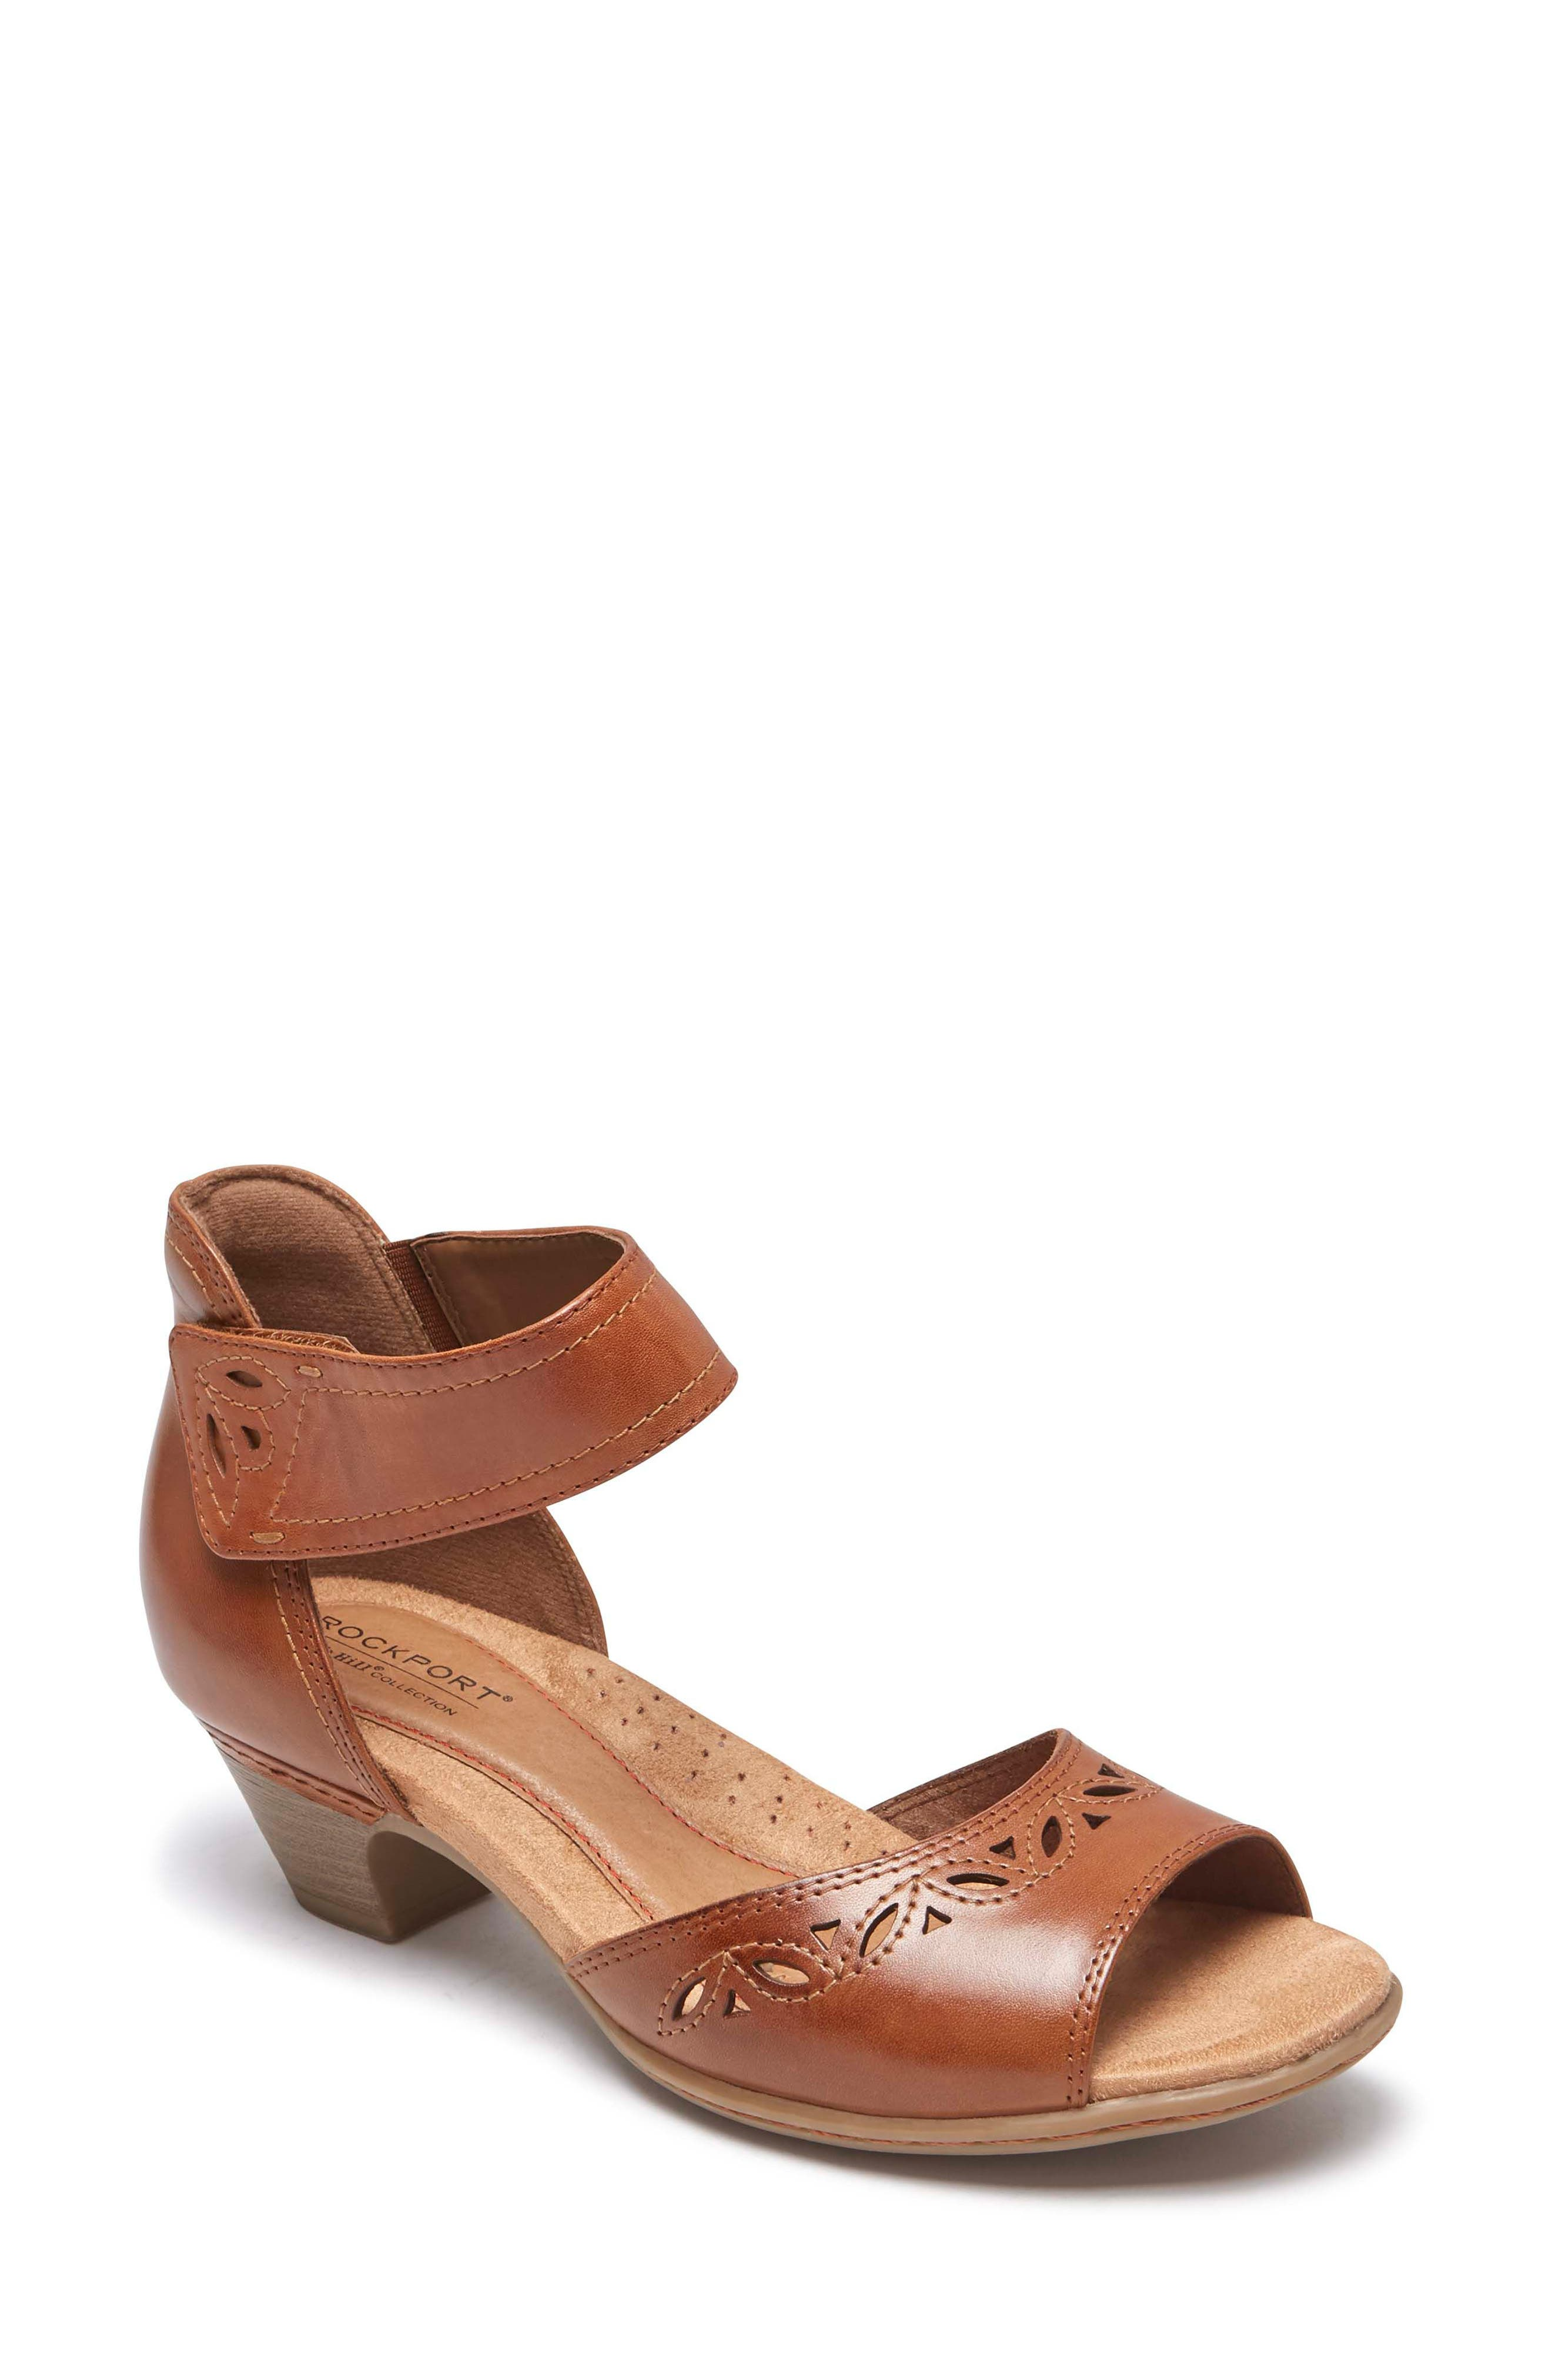 Abbott Perforated Sandal,                         Main,                         color, Tan Leather